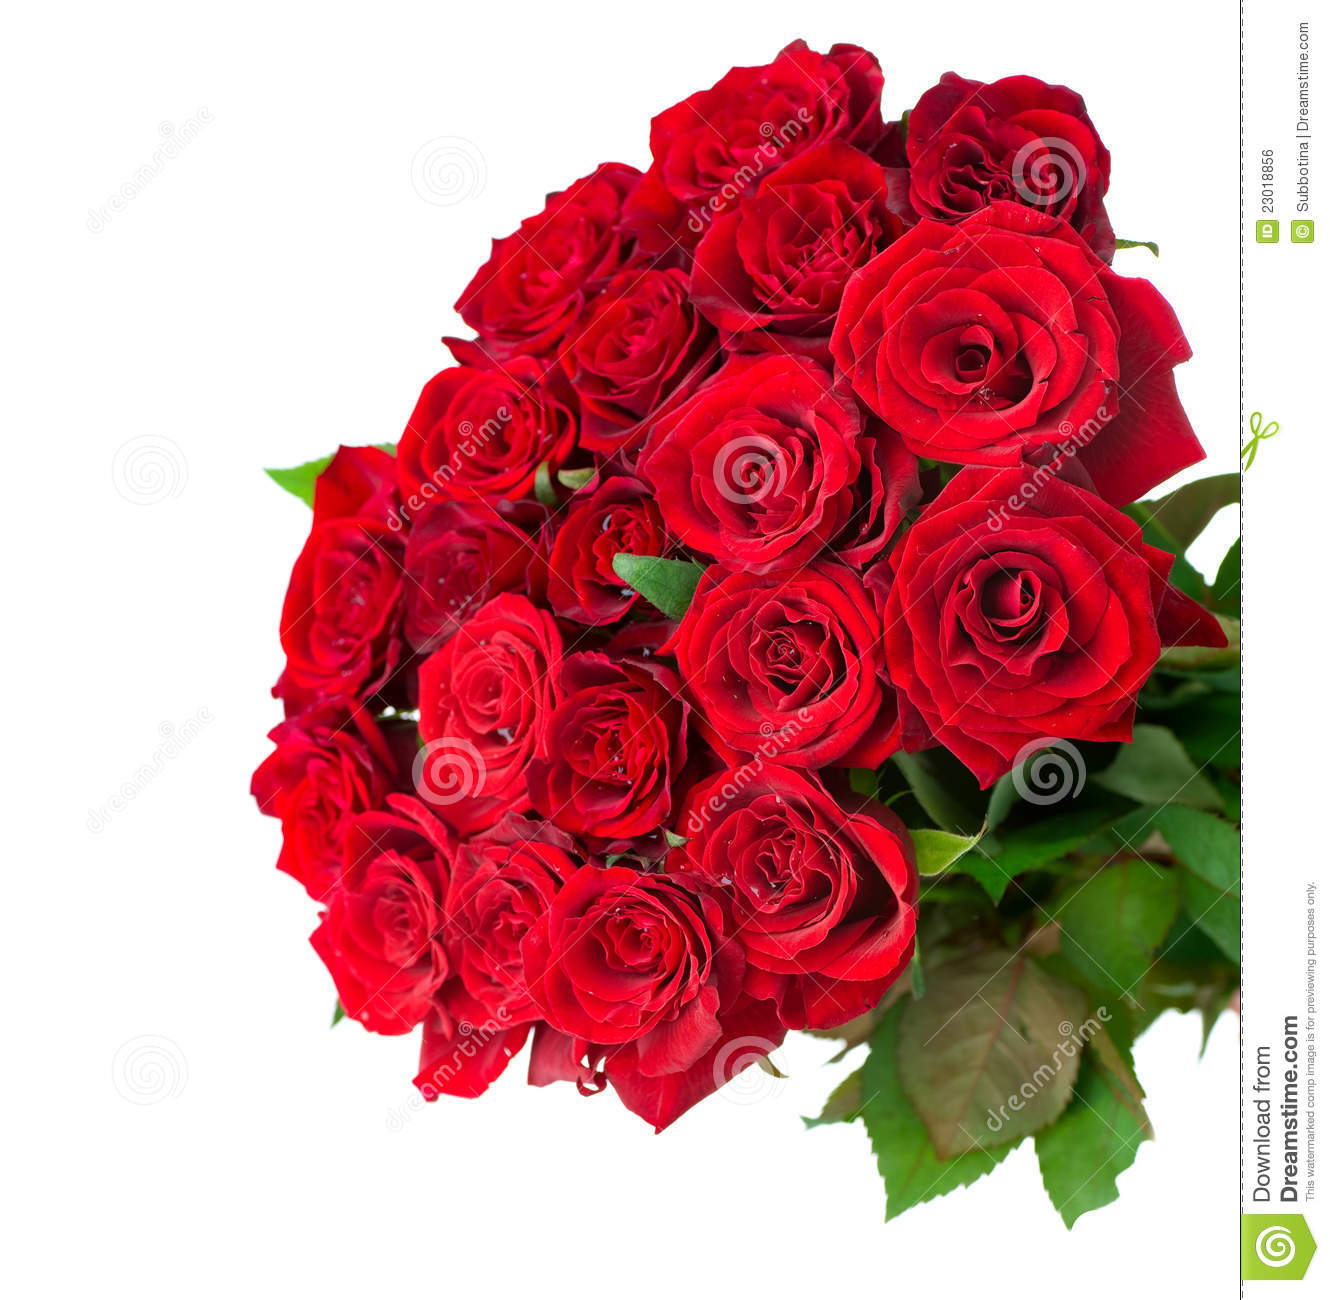 Rose Flowers Bouquet Stock Photo Image Of Floral Flower 23018856